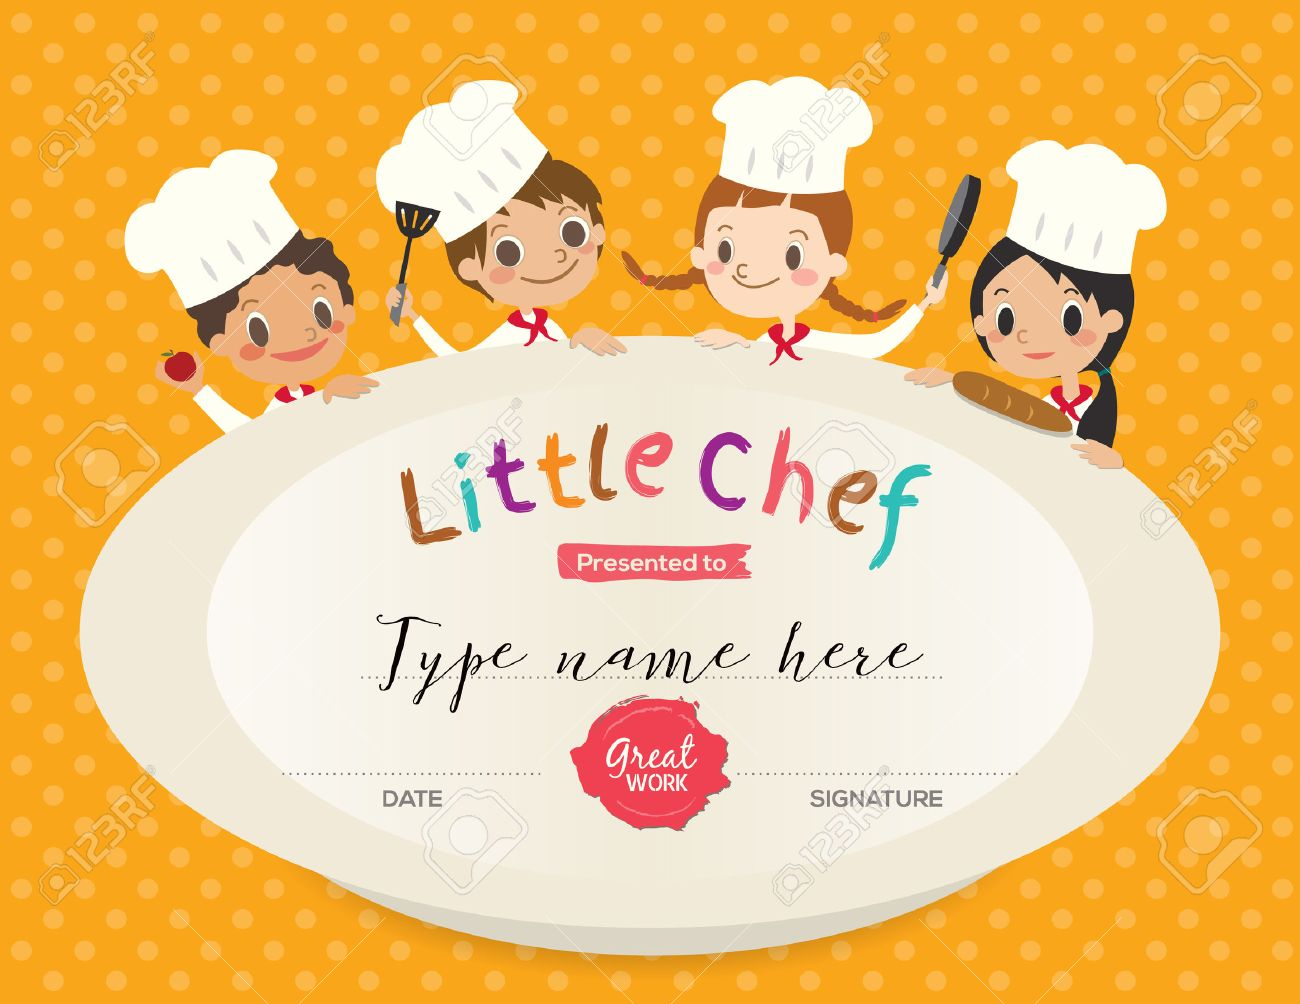 Kids Cooking class certificate design template with little chef cartoon illustration - 55157575